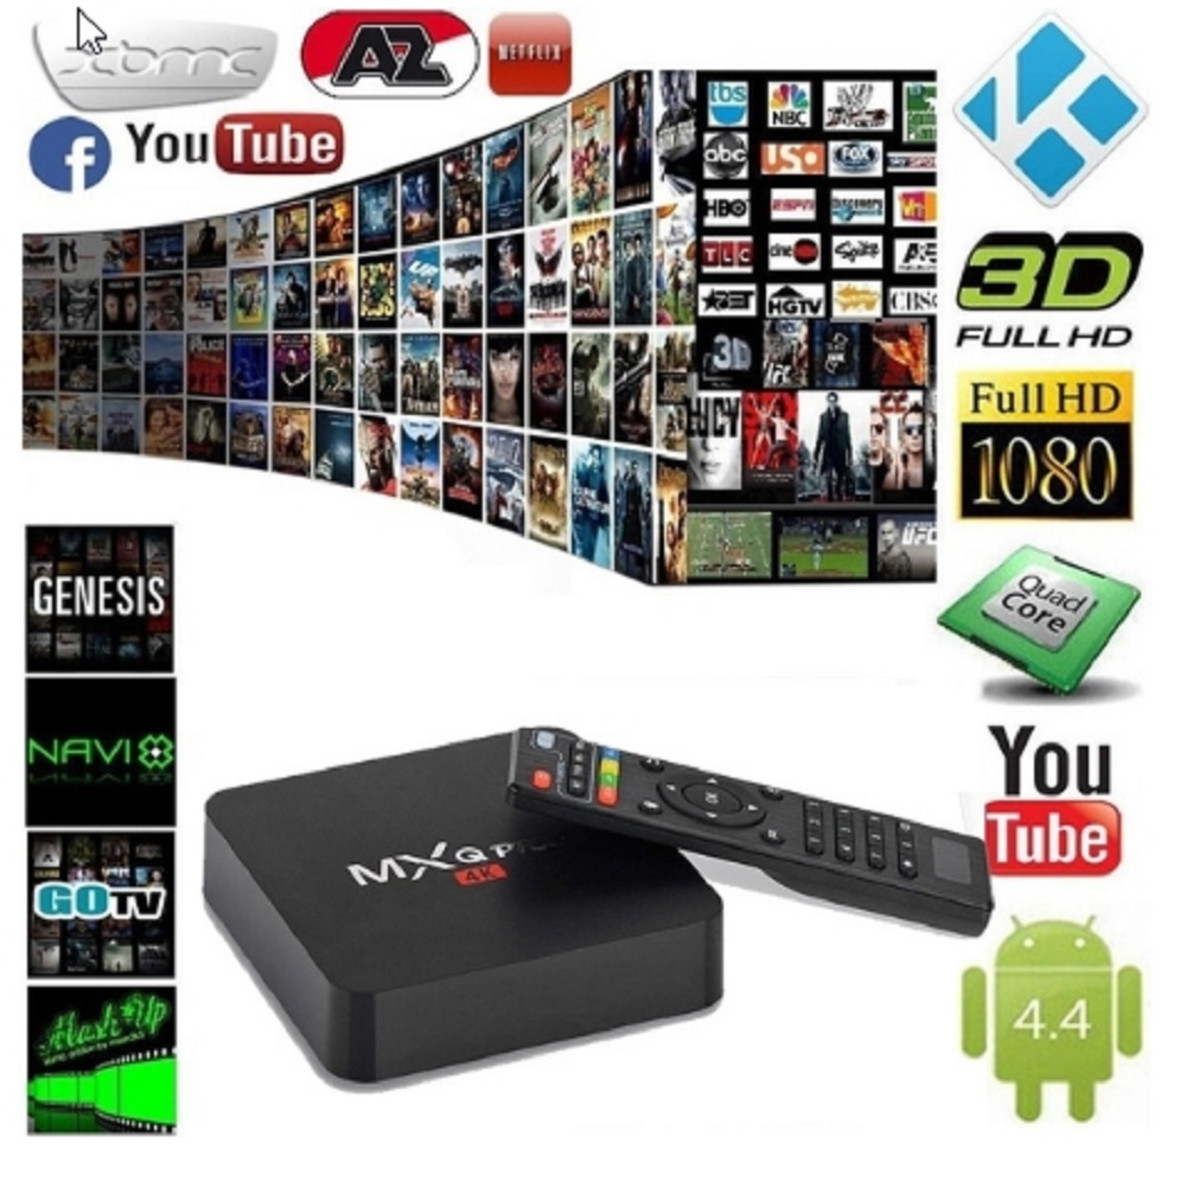 How to fix youtube not loading android tv box mxq pro 4k